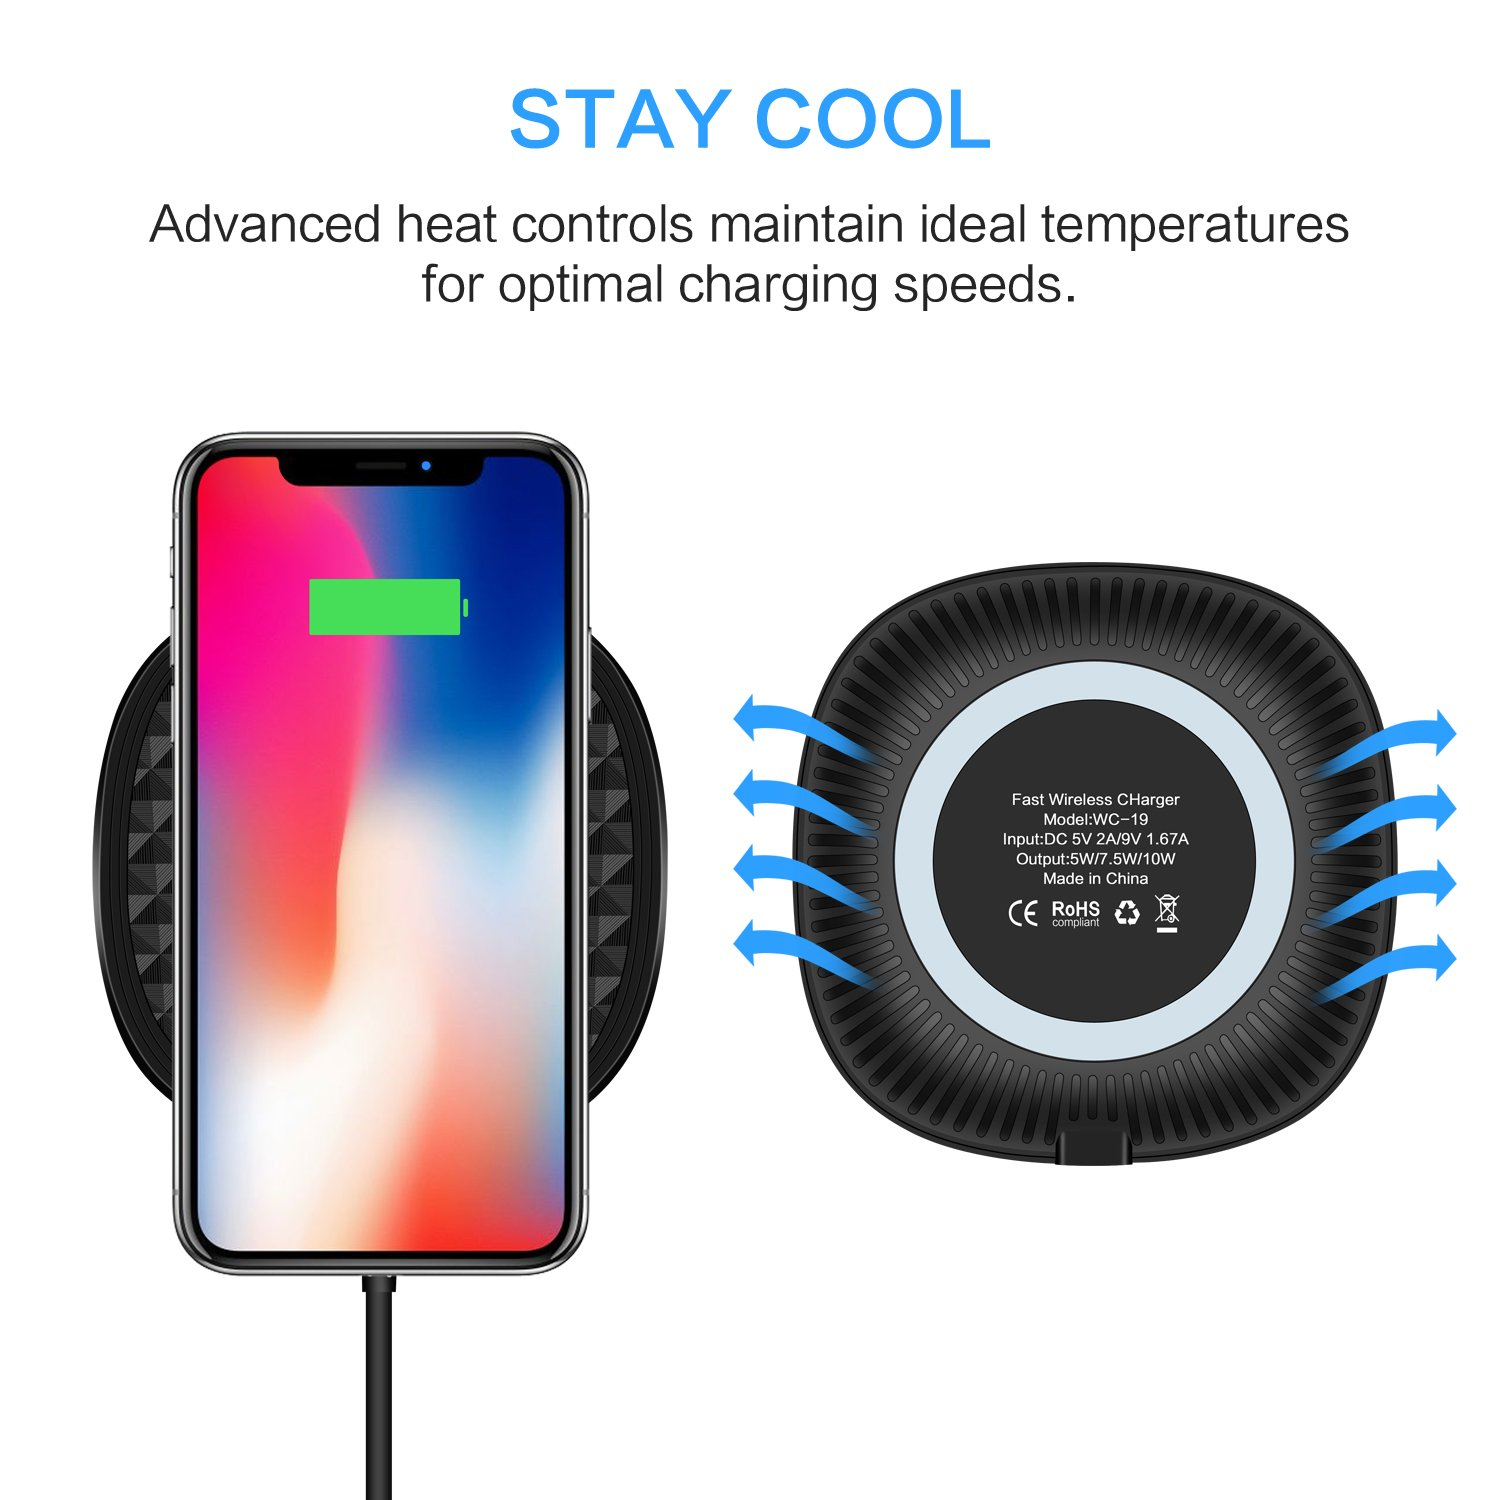 Amazon.com: Wireless Charger, Gonected 7.5W Wireless Charger for iPhone X/8/8 Plus,10W Fast Wireless Charging for Samsung Galaxy Note 8/ S8/S8 Plus, ...